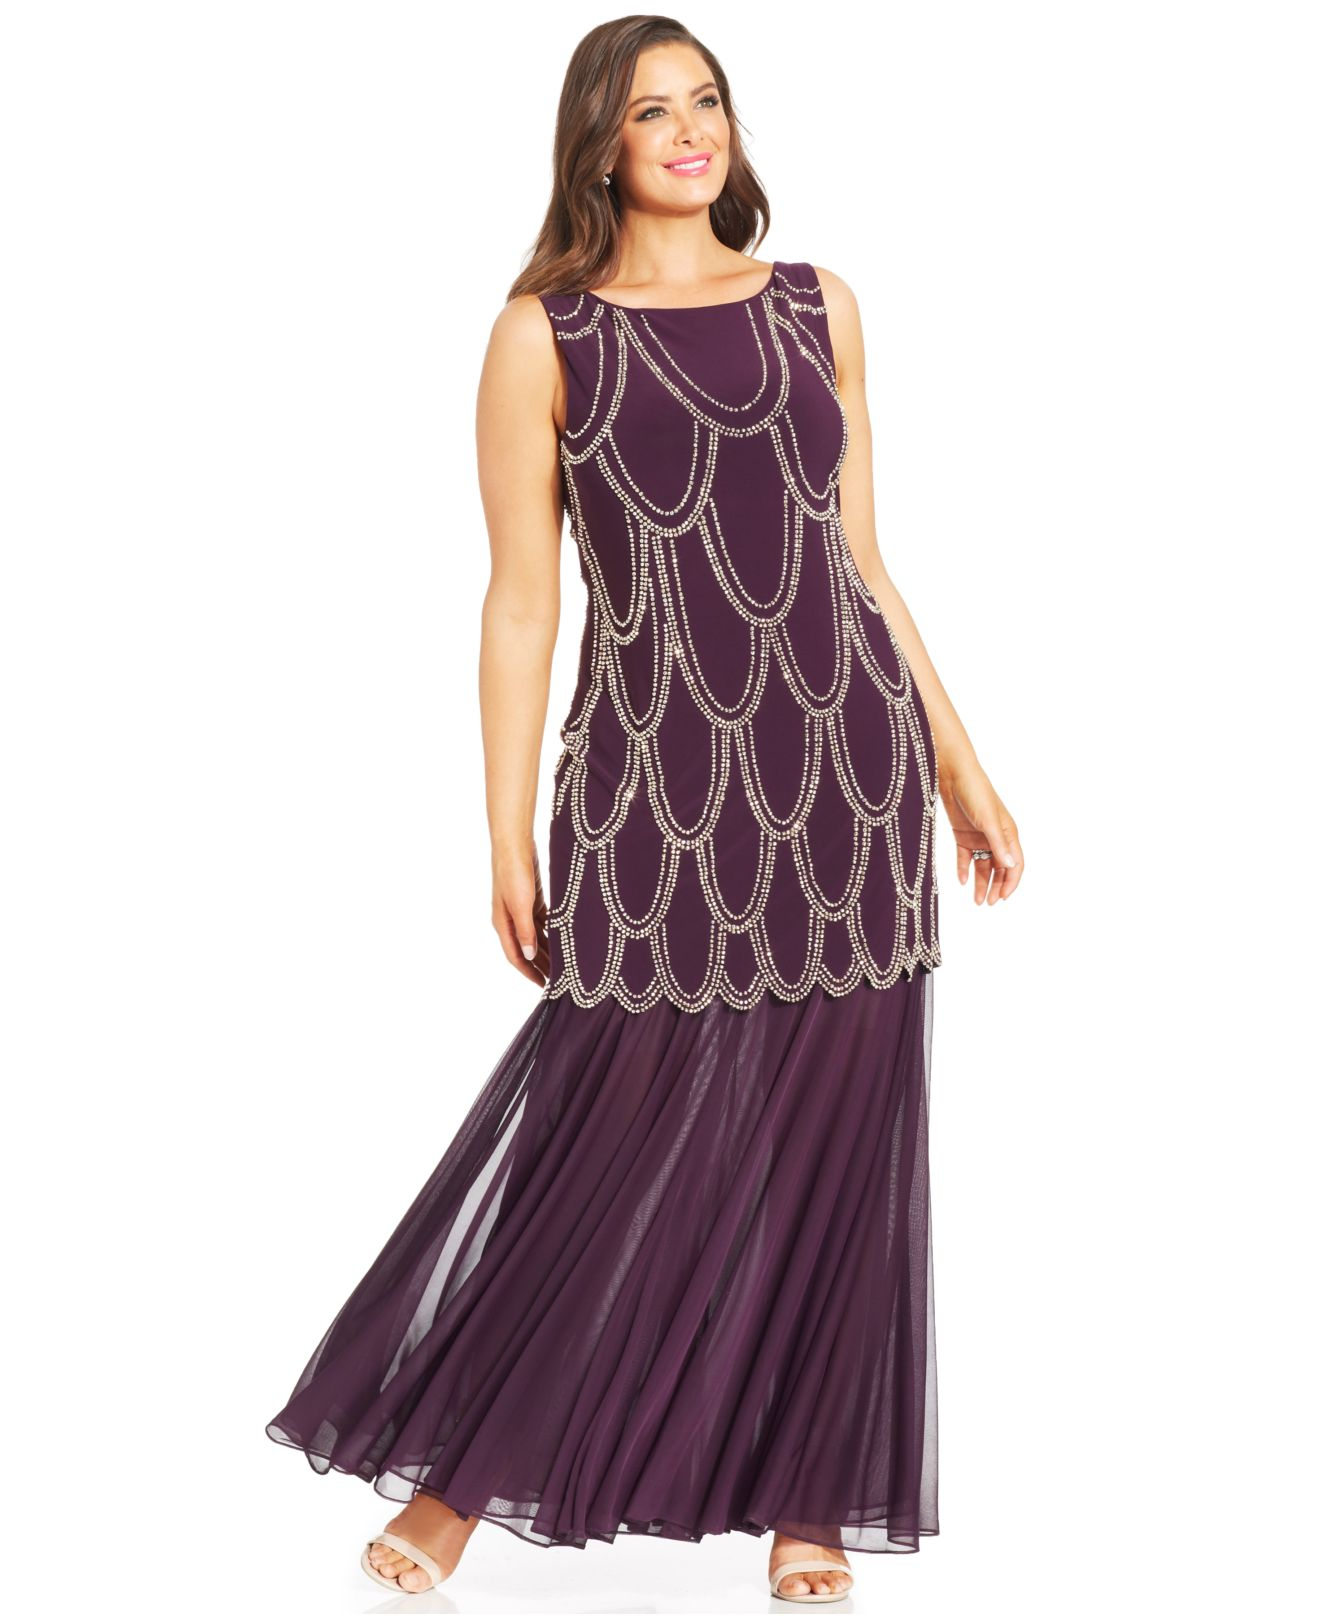 Lyst - Betsy & Adam Plus Size Beaded Drop-waist Dress in Purple